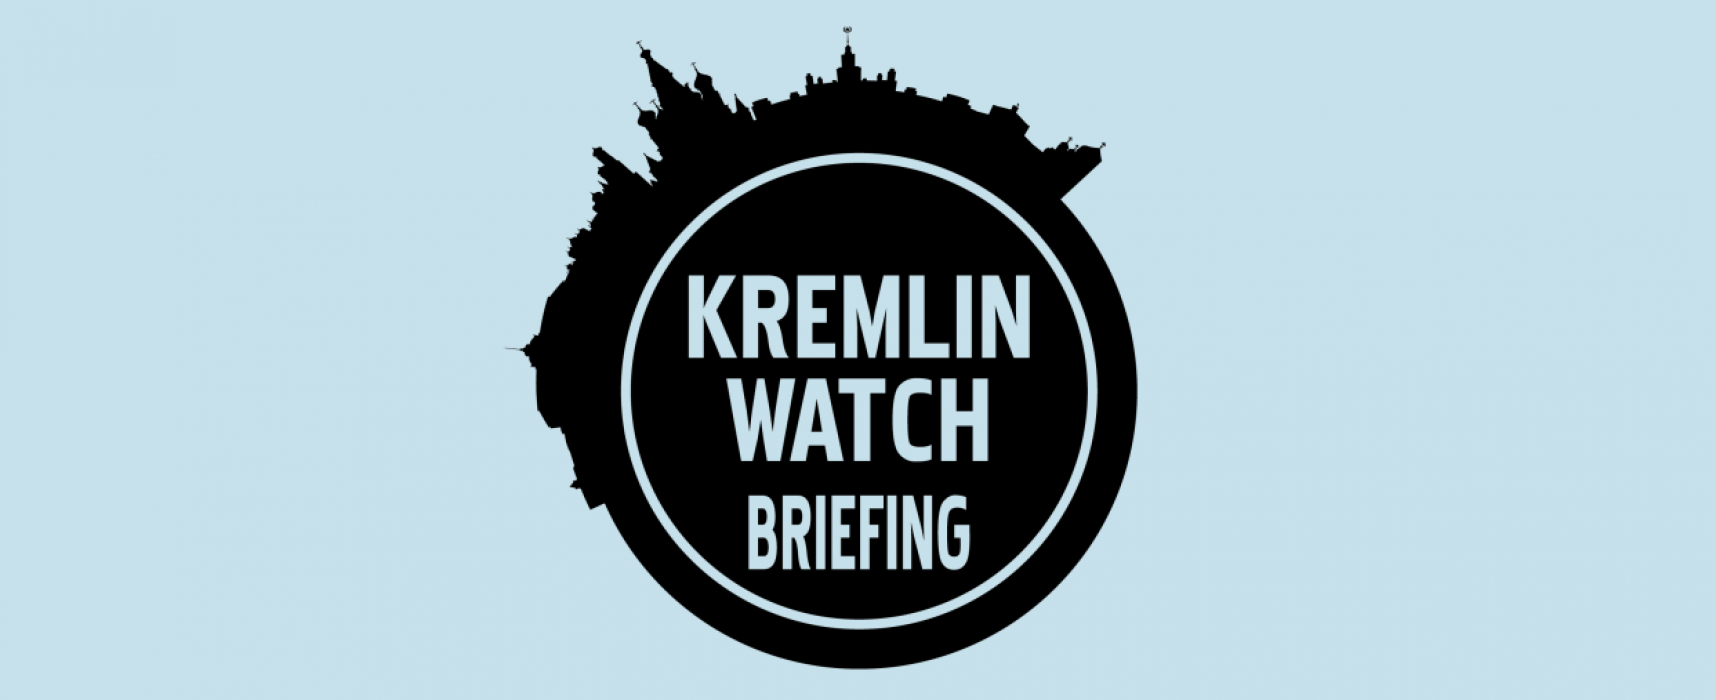 Kremlin Watch Briefing: Russian diplomats must travel back to Moscow